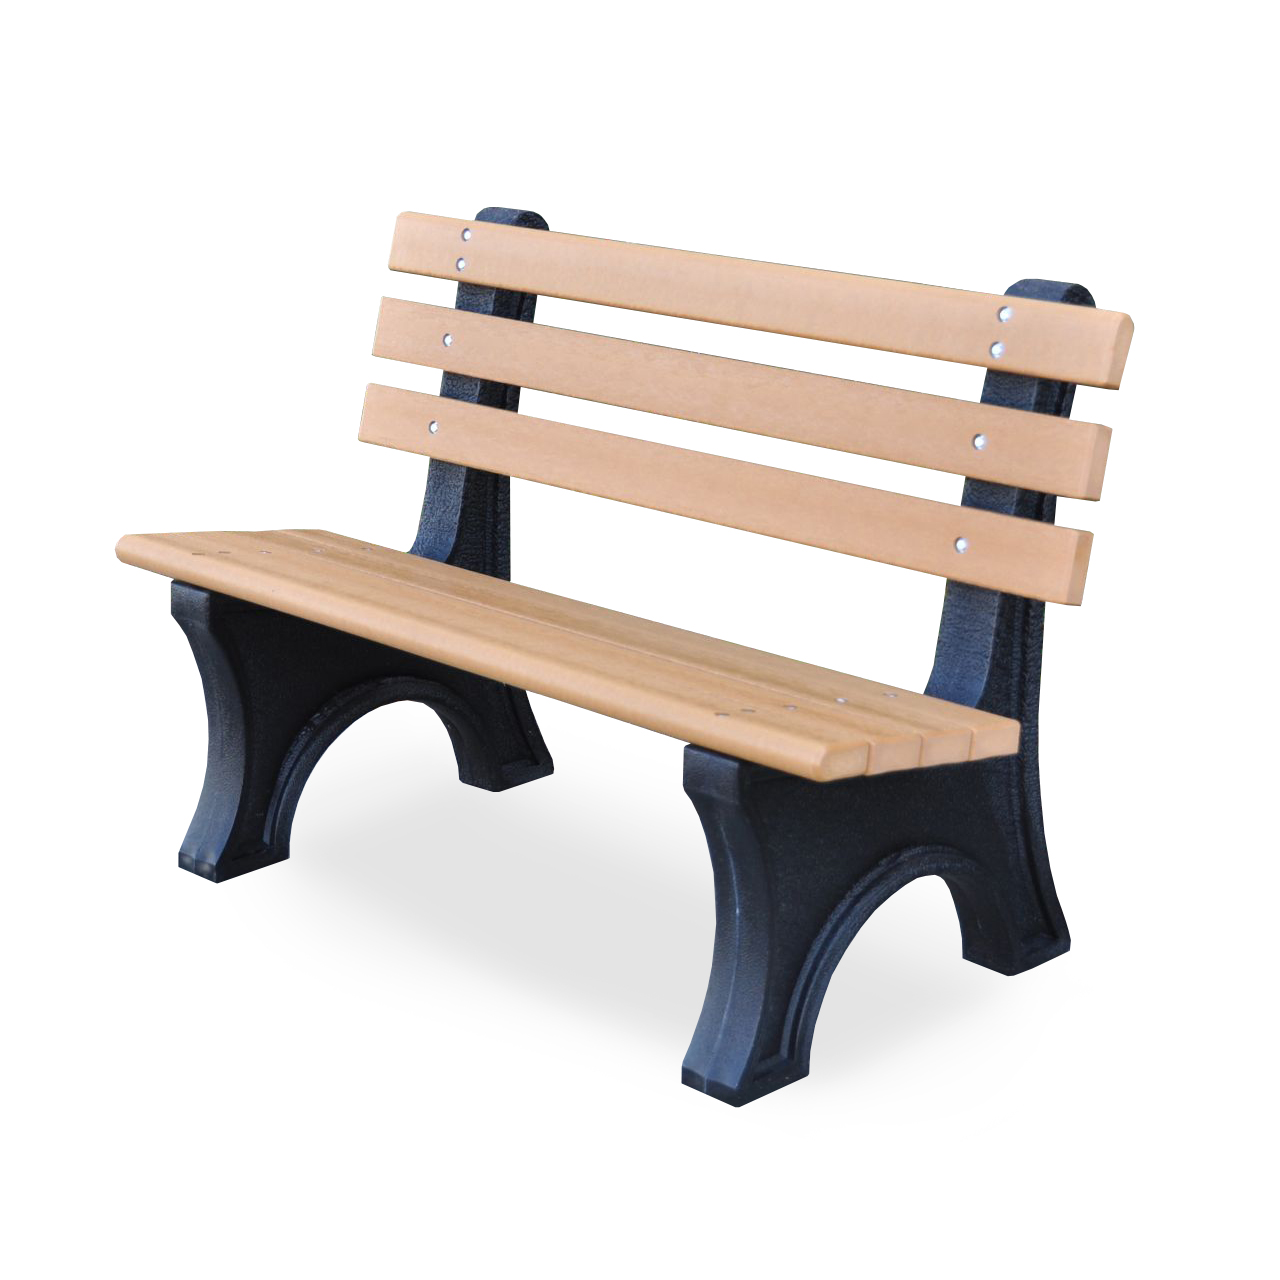 Comfort Park Avenue Bench By Jayhawk Plastics Outdoor Benches For Parks Aaa State Of Play